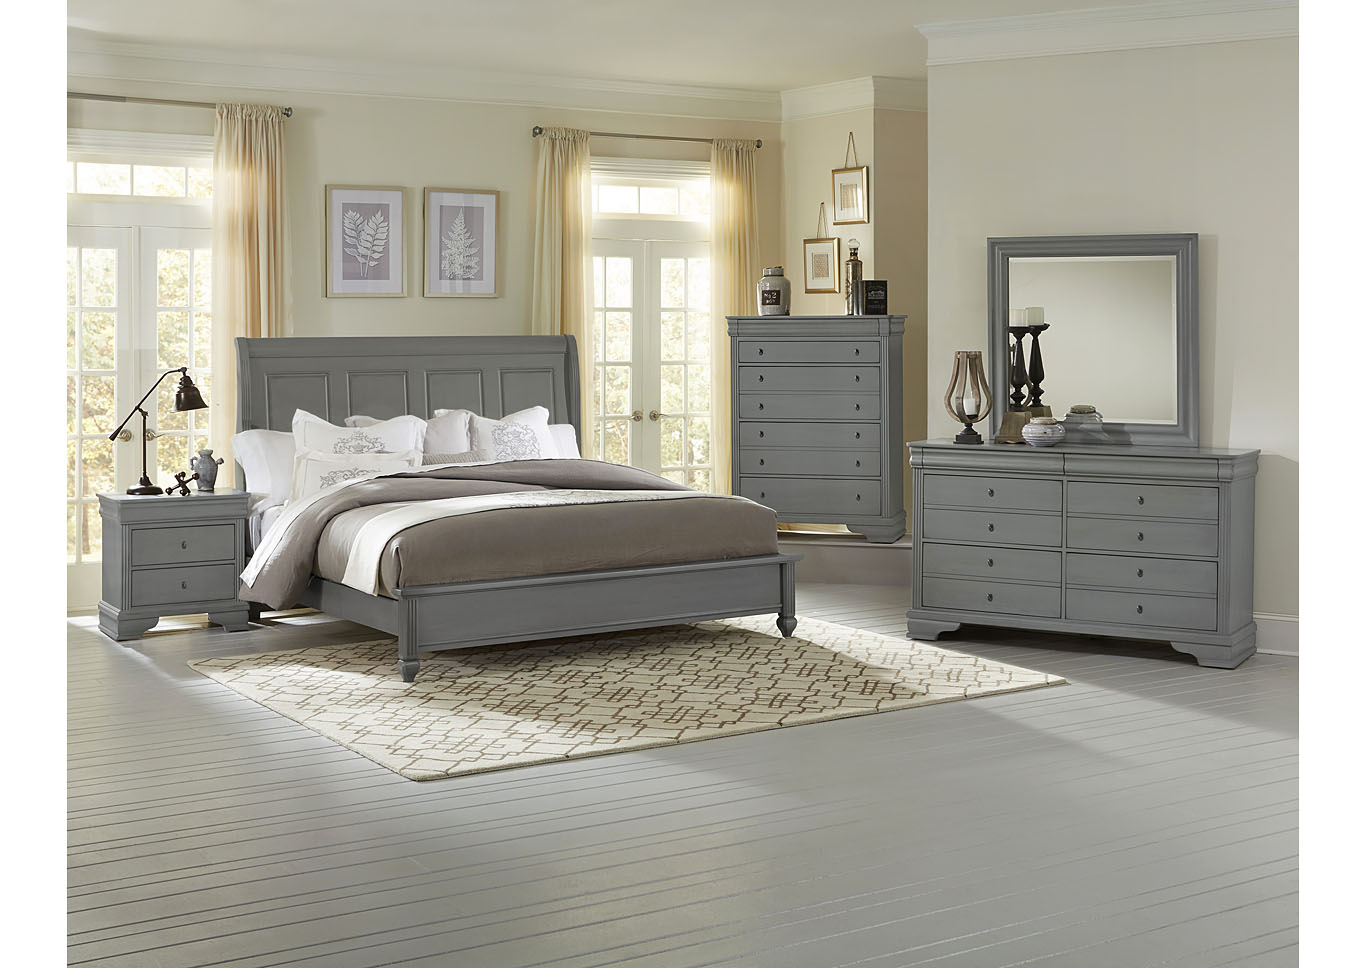 French Market Zinc King Sleigh Bed w/ Dresser, Mirror and Nightstand,Vaughan-Bassett